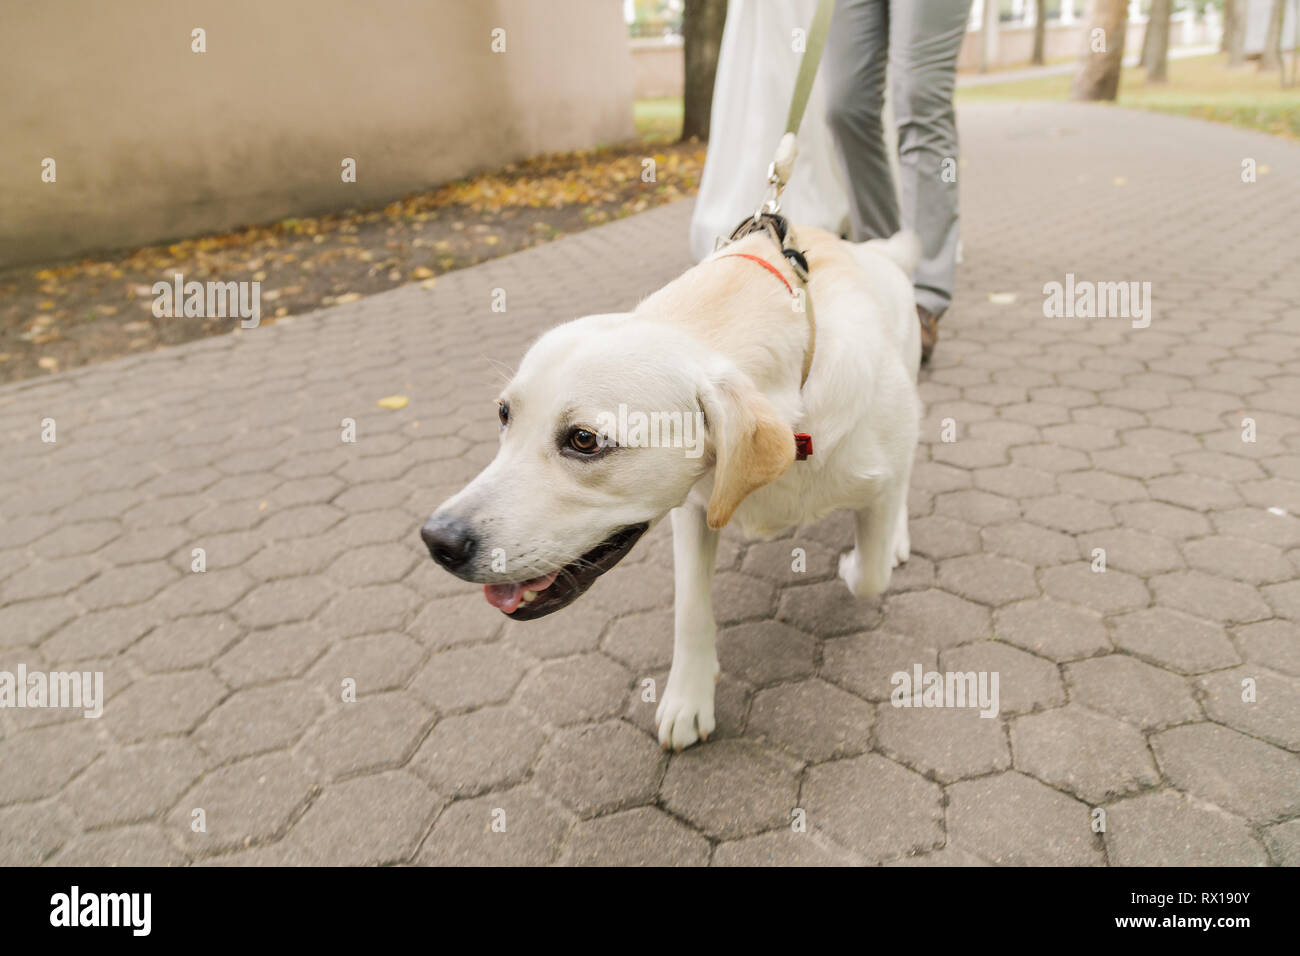 Owner and labrador retriever dog walking in the city. - Stock Image